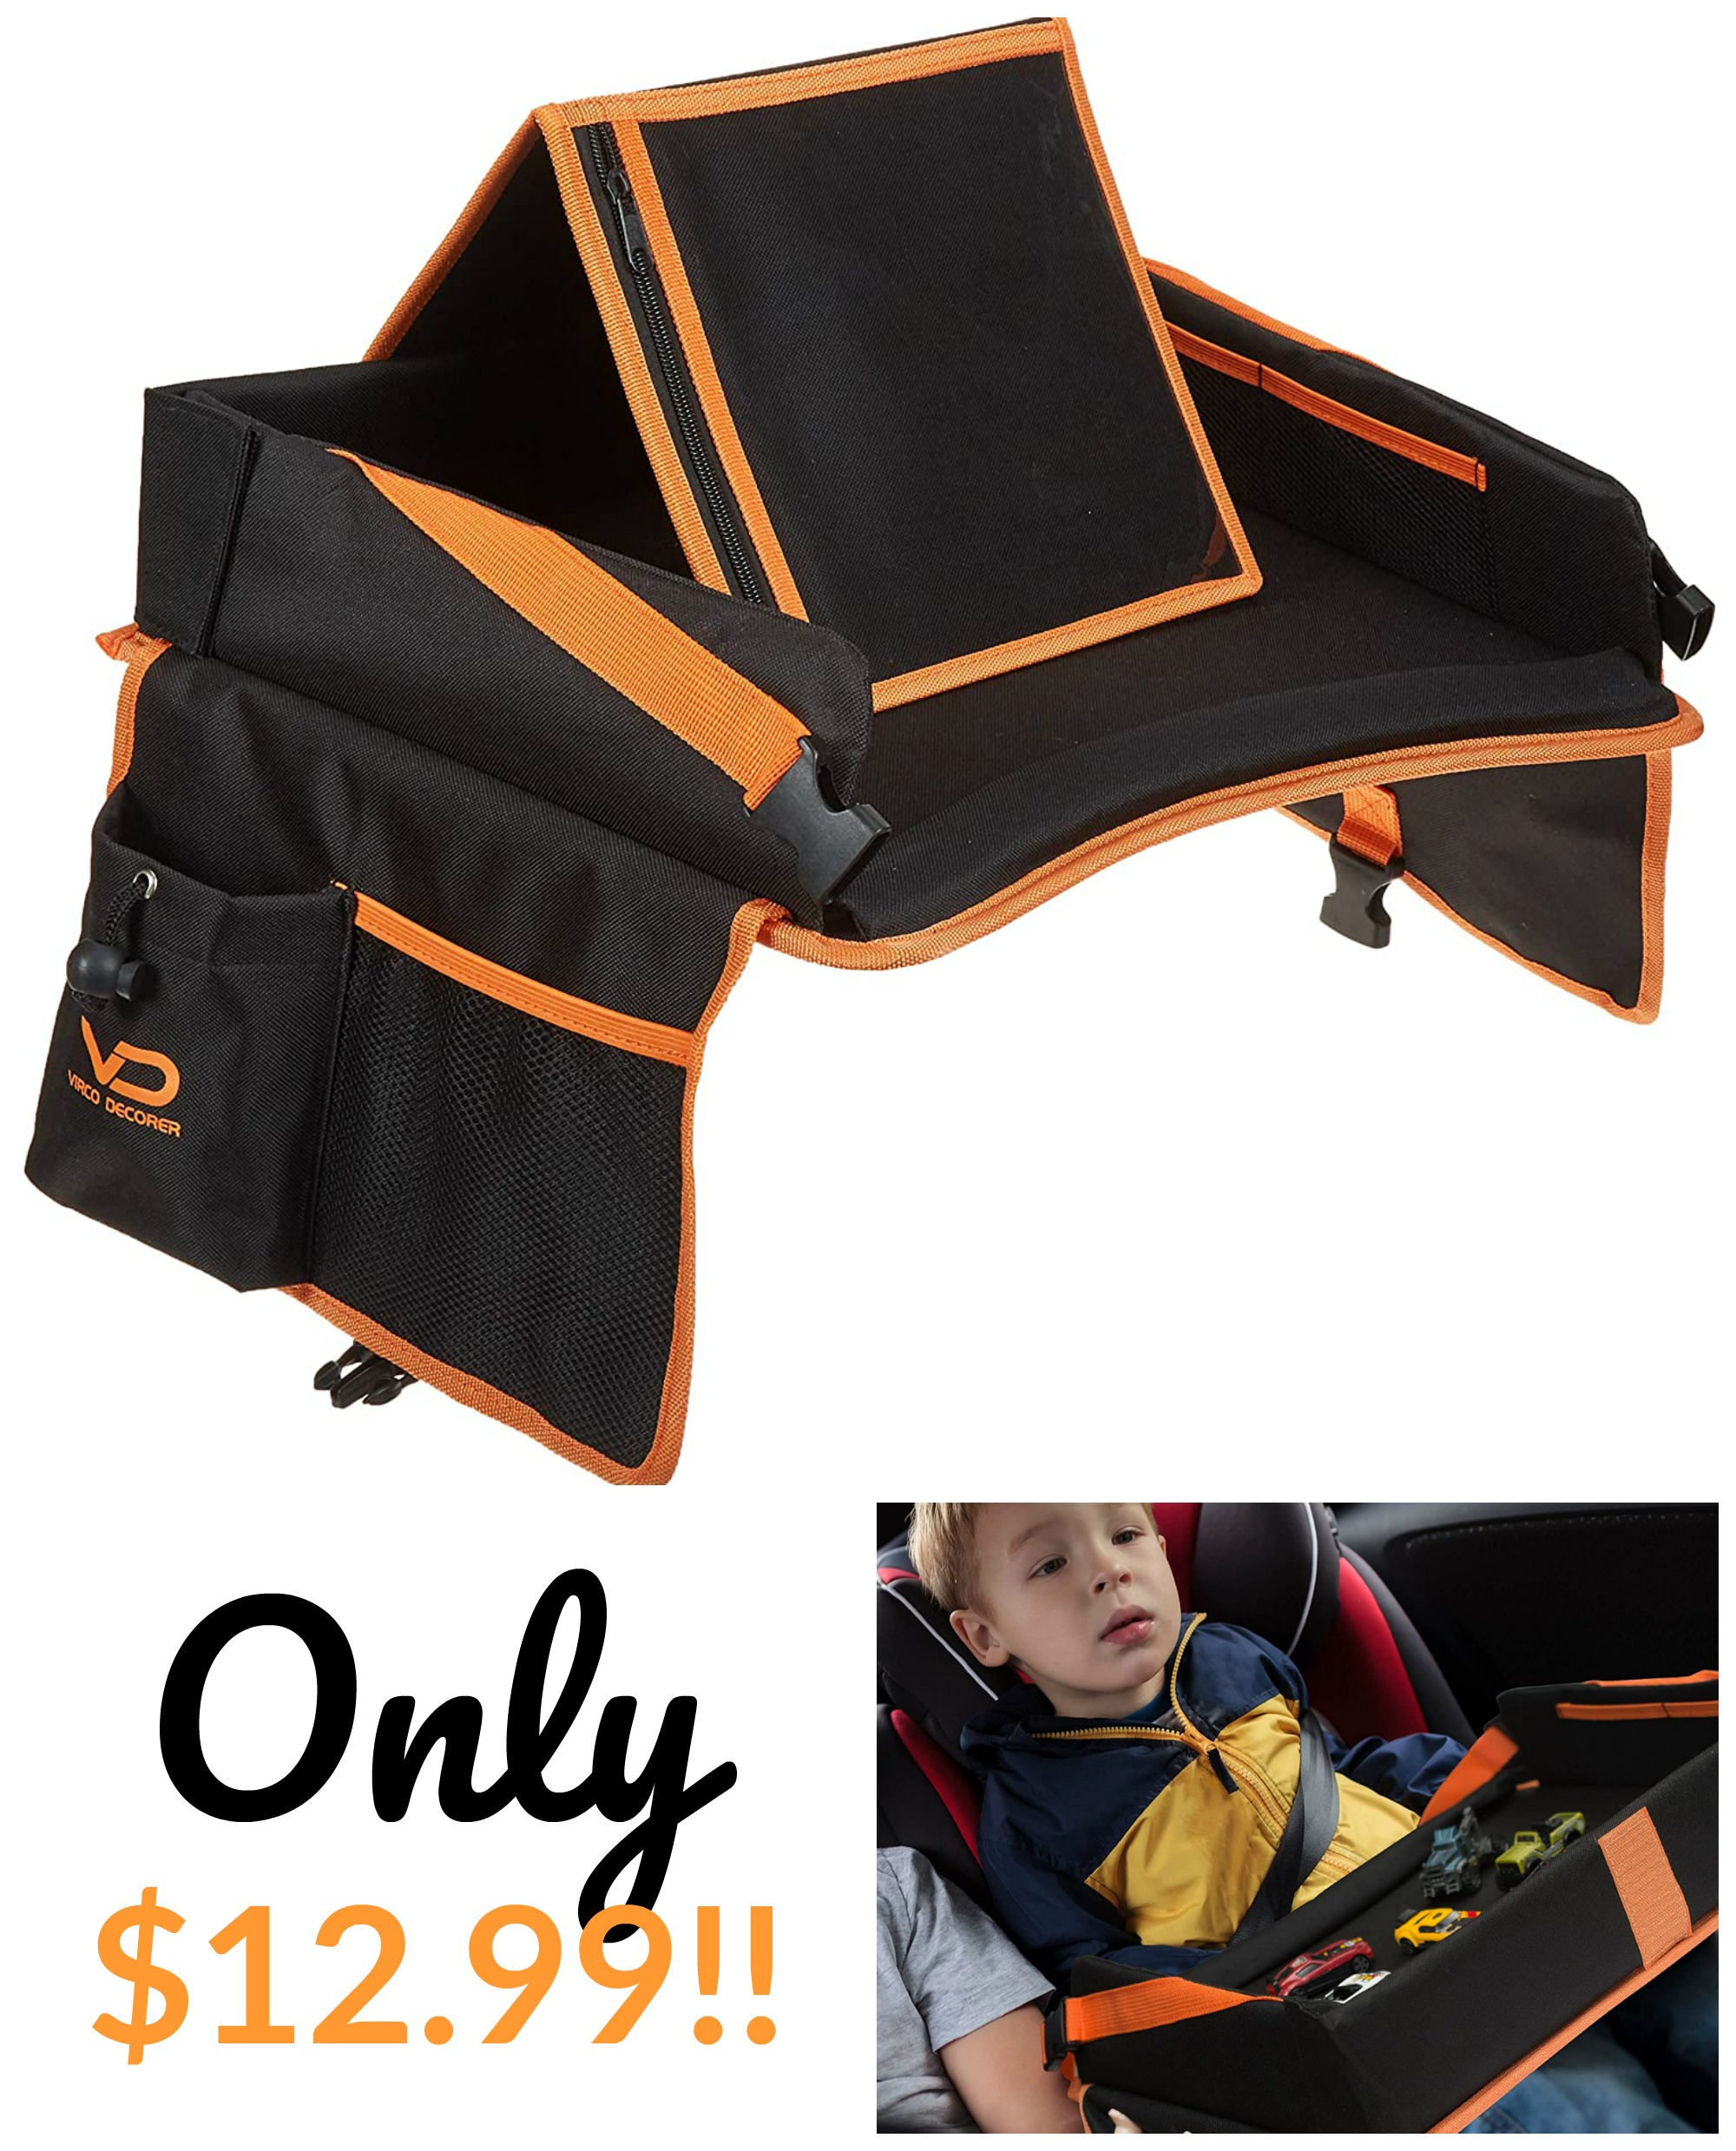 Kids Travel Tray with Storage Pockets Only $12.99!